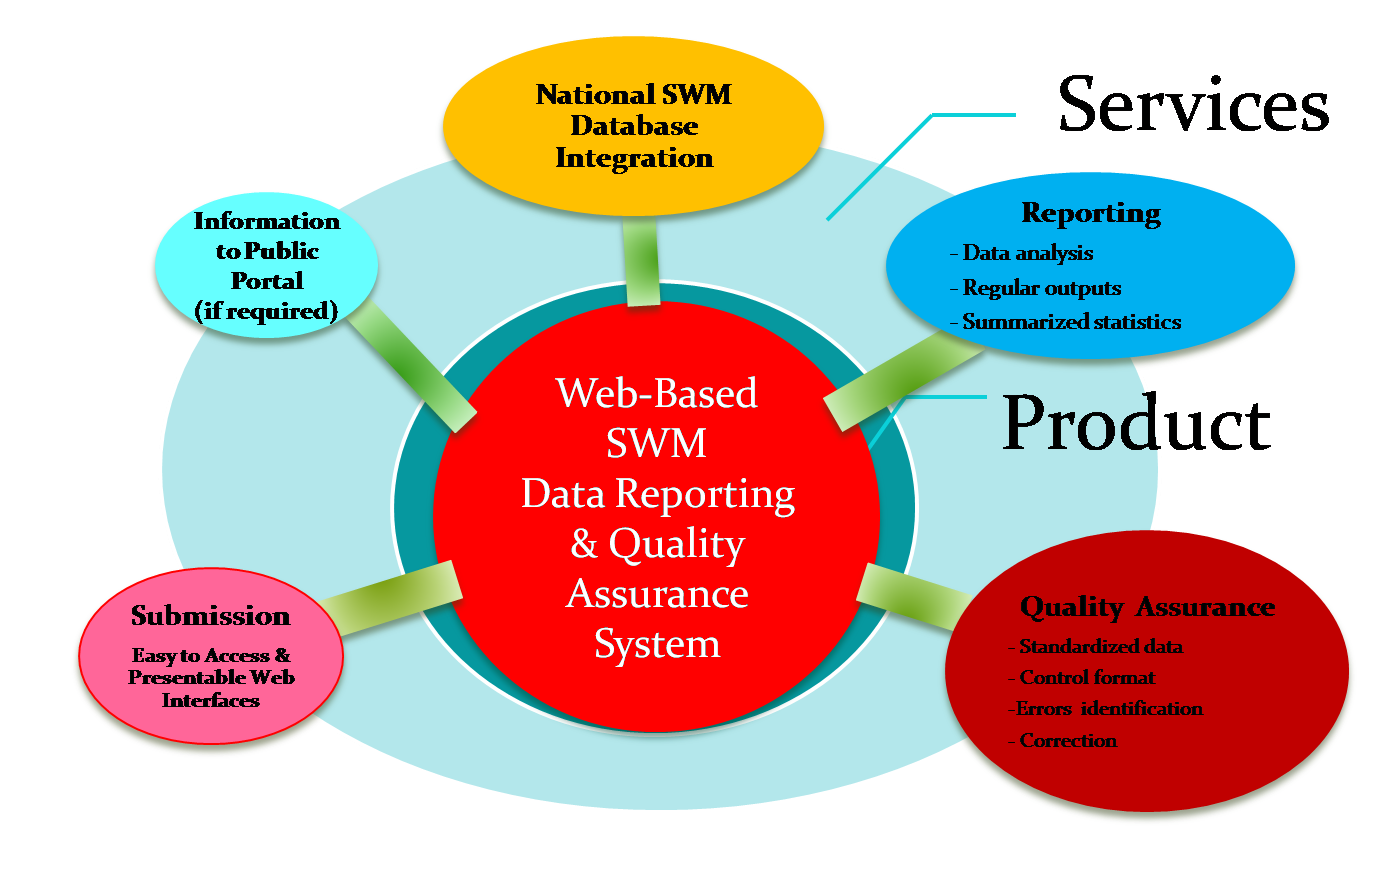 national solid waste management plan zambia Establishment of the national commission of solid waste management, which now provides well-ingrained and effective coordination of sector policies and government actions within the 15-year national solid waste program.